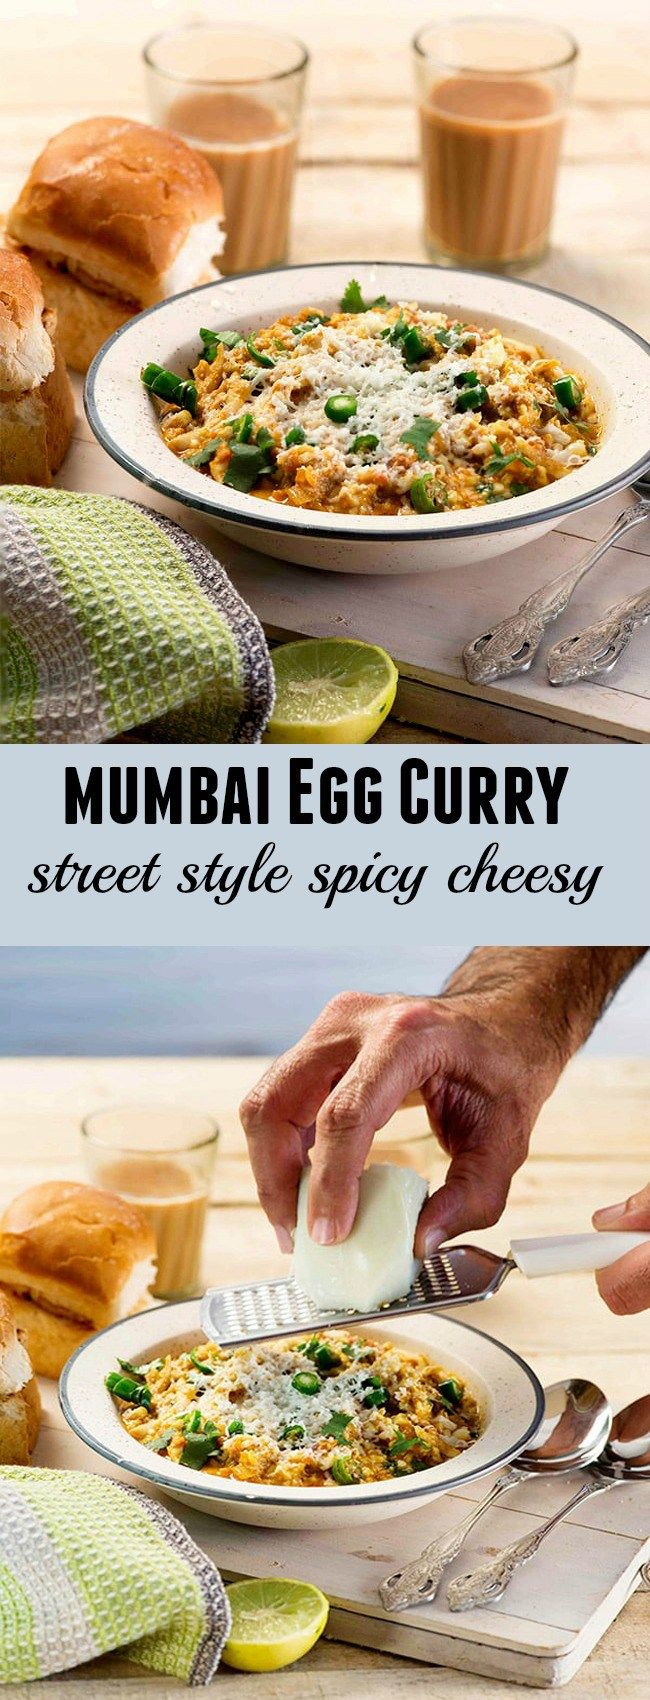 Mumbai style Egg curry is spicy egg curry cooked with lots of spicy chilly and topped with grated cheese and serve like a street style food along with buttered pav buns.